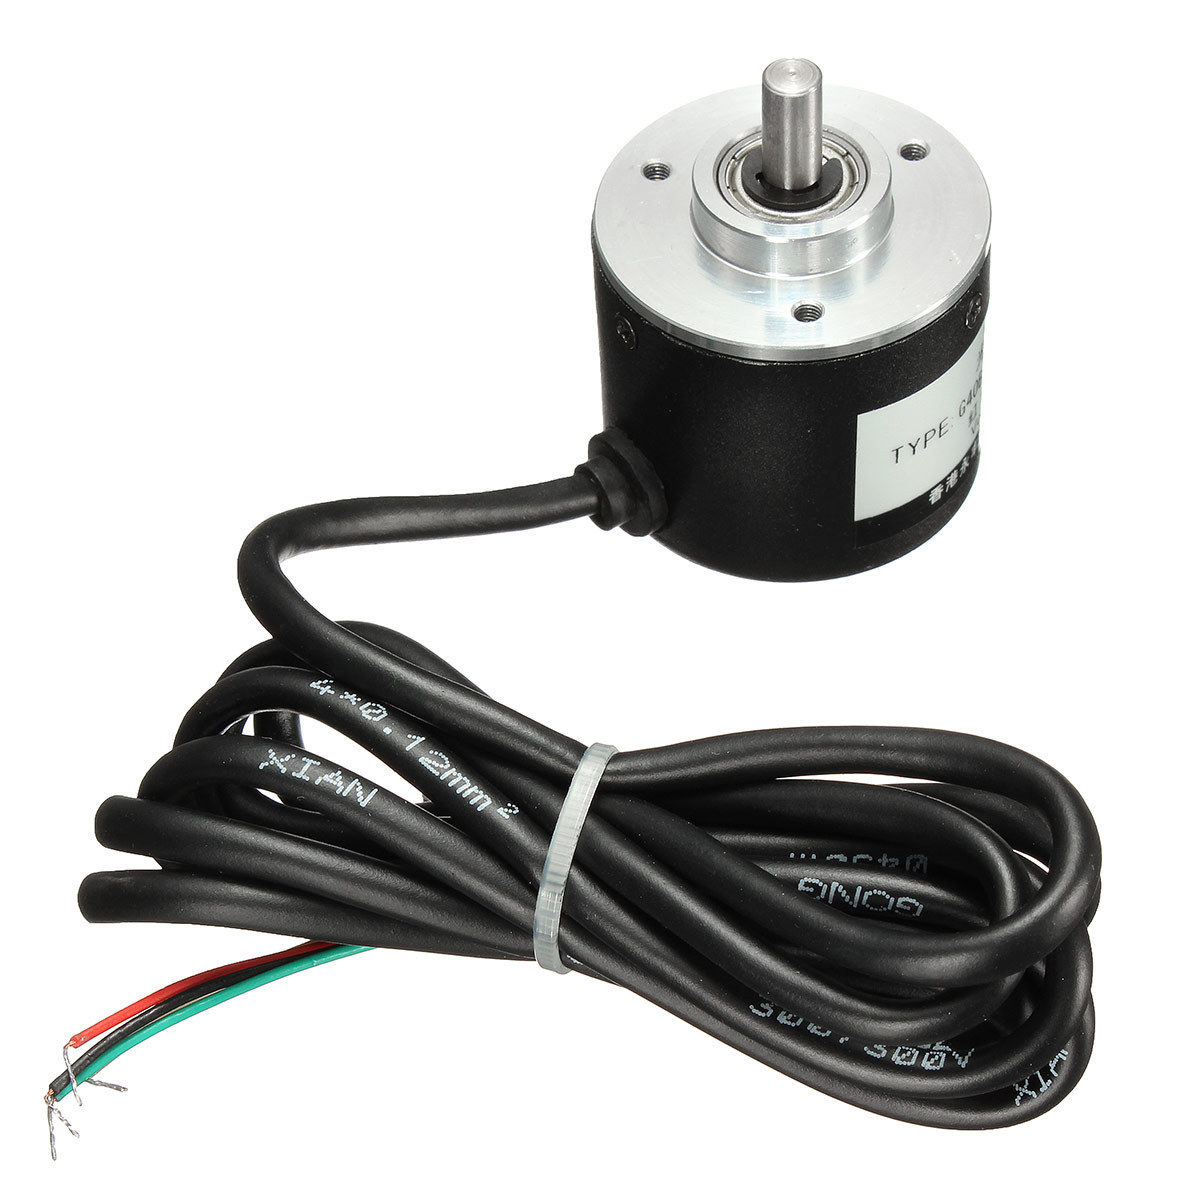 THGS Rotary Encoder 400P/R 6mm Incremental Optical Shaft Working Measurement 5-24V nib rotary encoder e6b2 cwz6c 5 24vdc 800p r